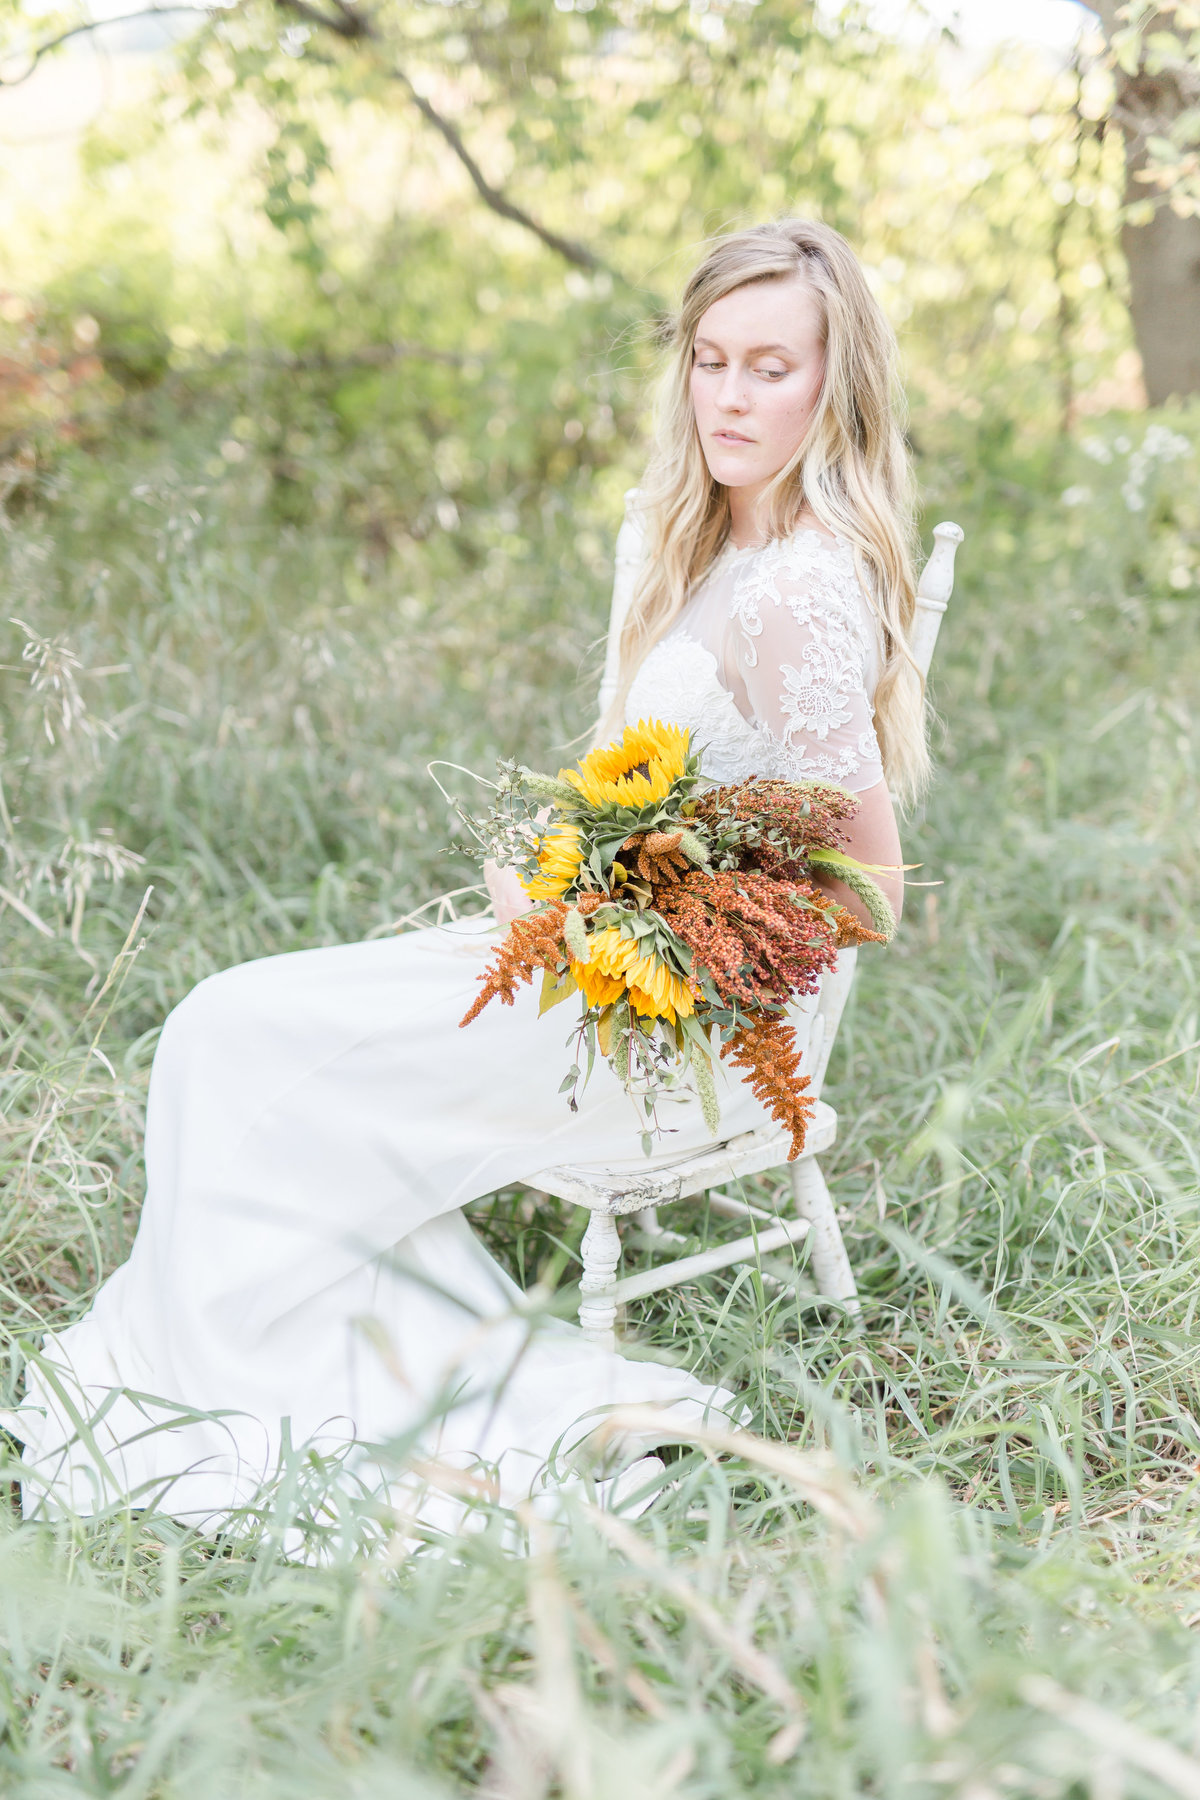 Kailey - Styled Shoot - New Edits-111